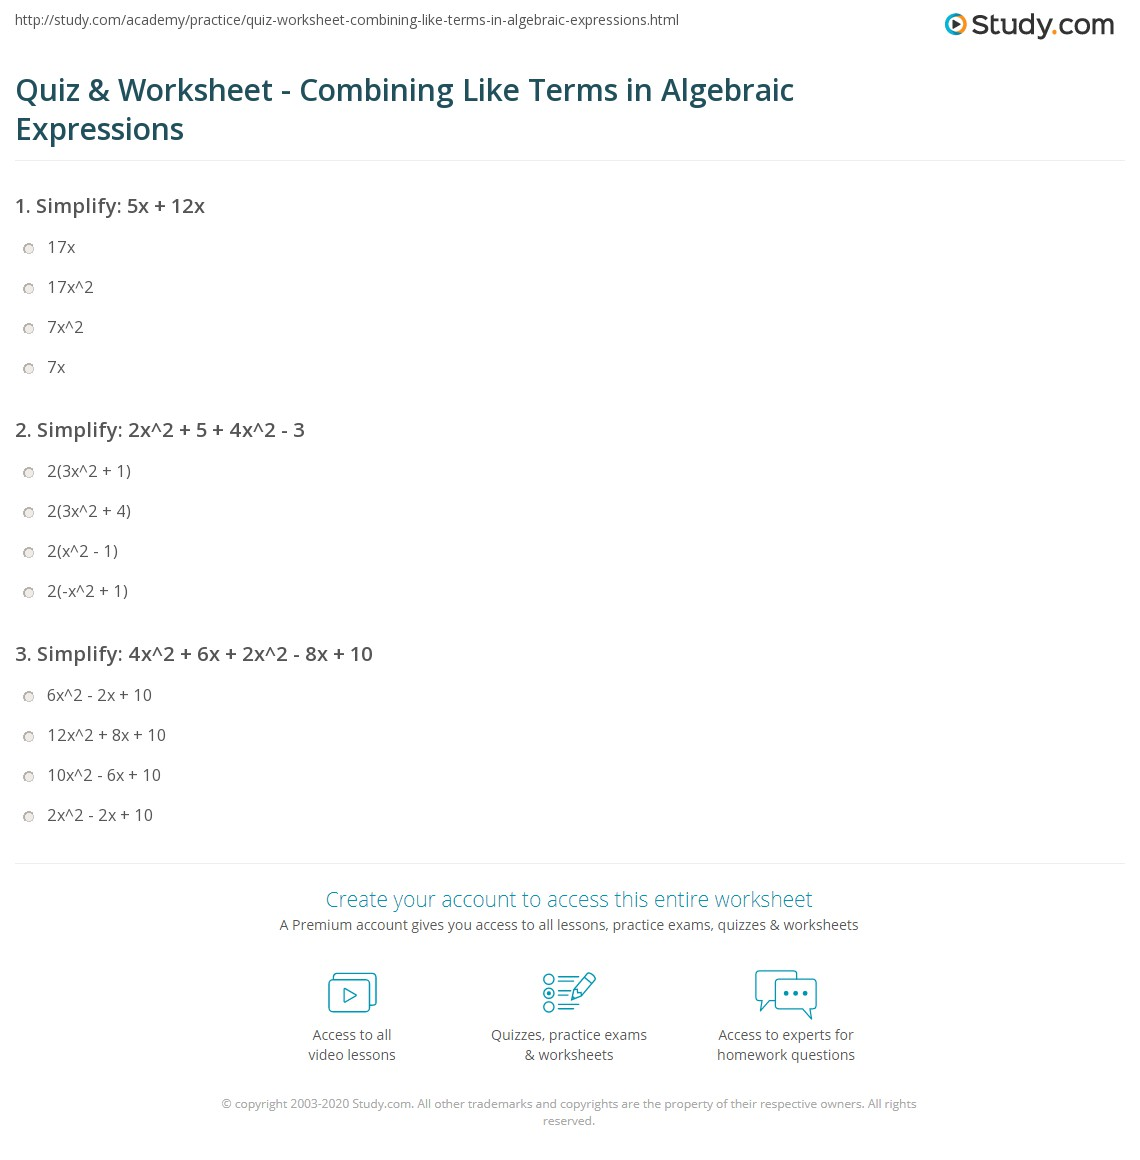 worksheet Adding Like Terms Worksheet quiz worksheet combining like terms in algebraic expressions print worksheet